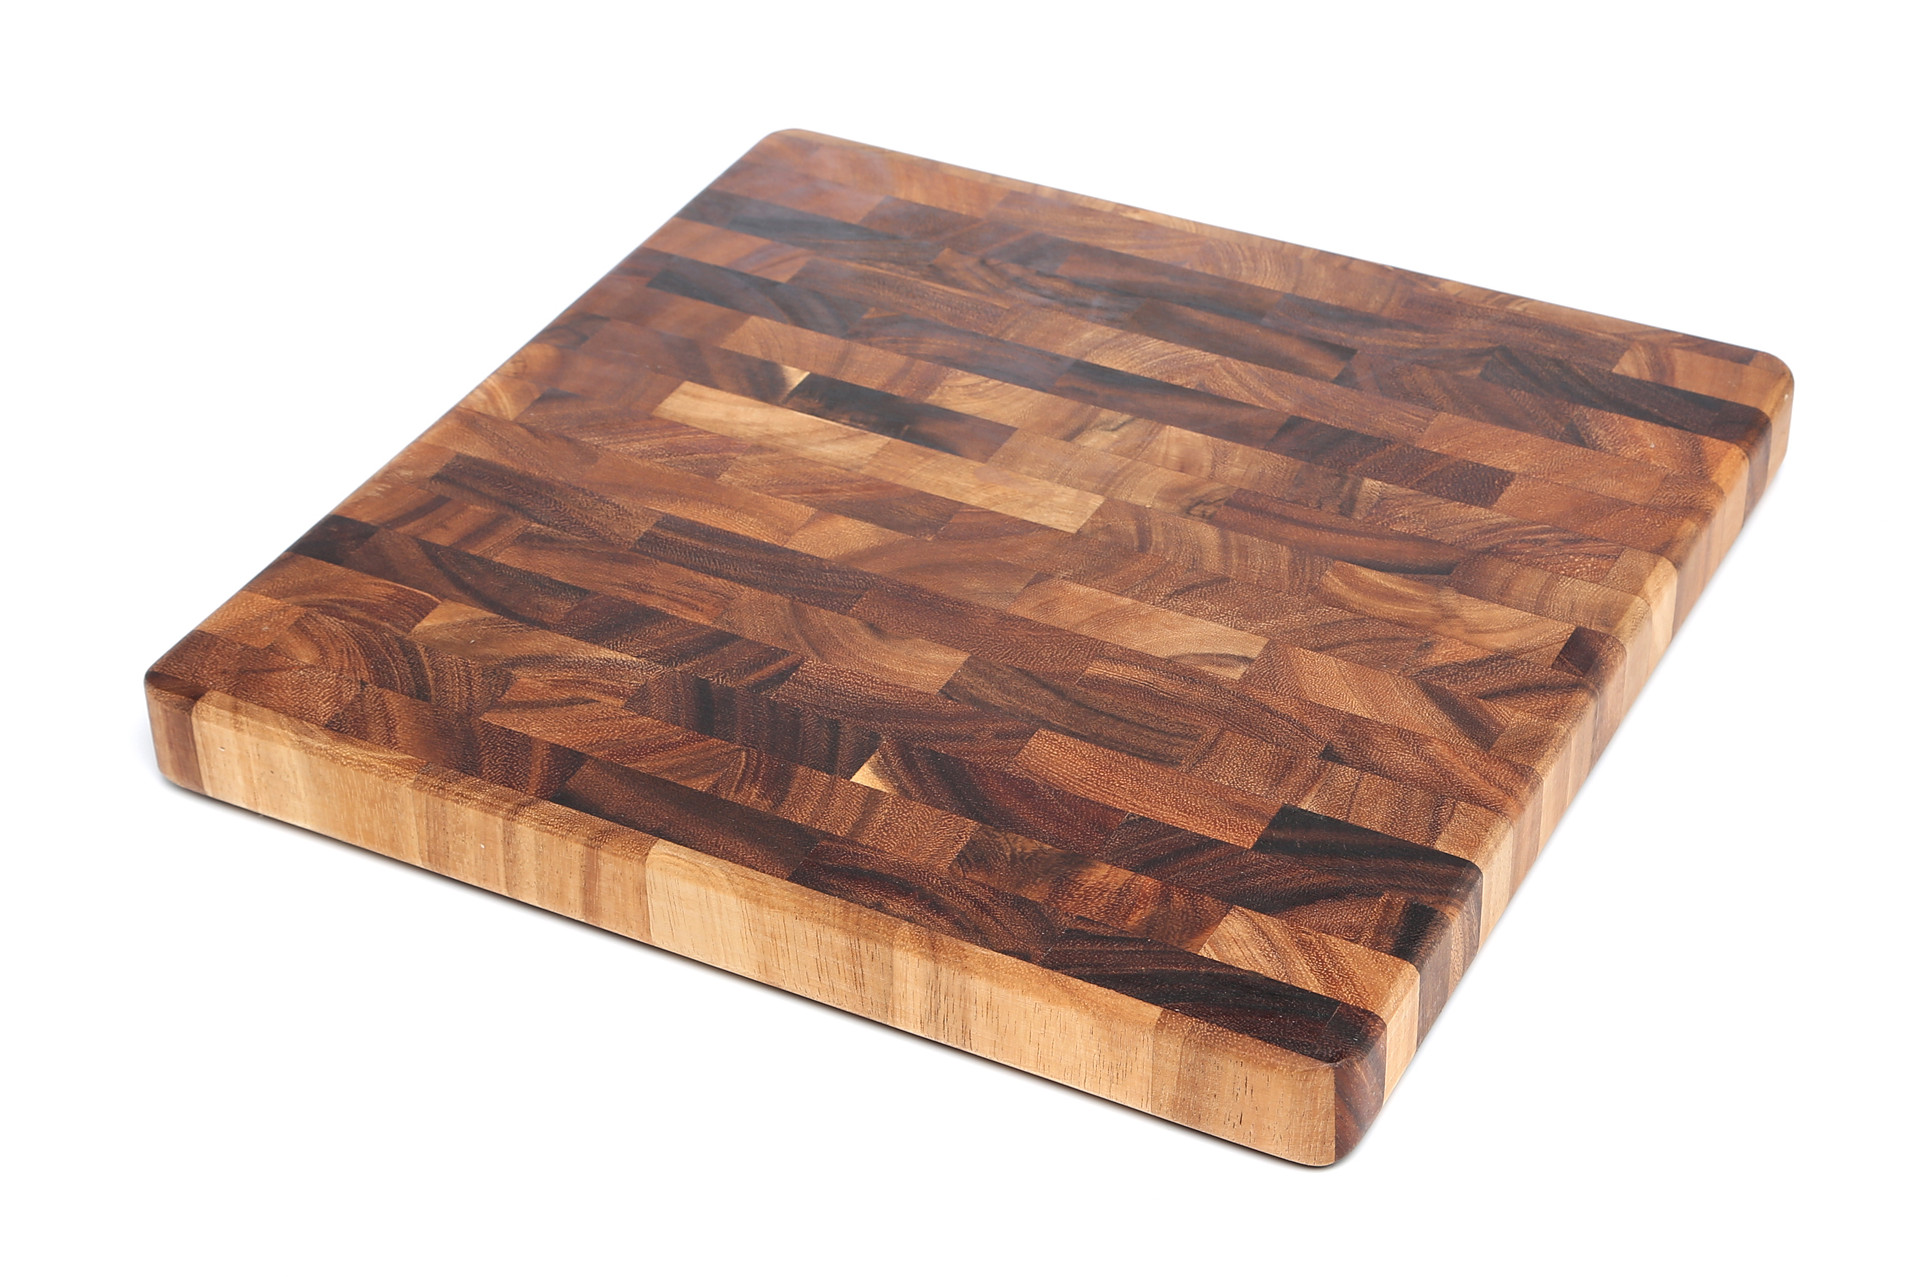 ironwood gourmet acacia wood end grain 14 inch chef 39 s cutting board ebay. Black Bedroom Furniture Sets. Home Design Ideas